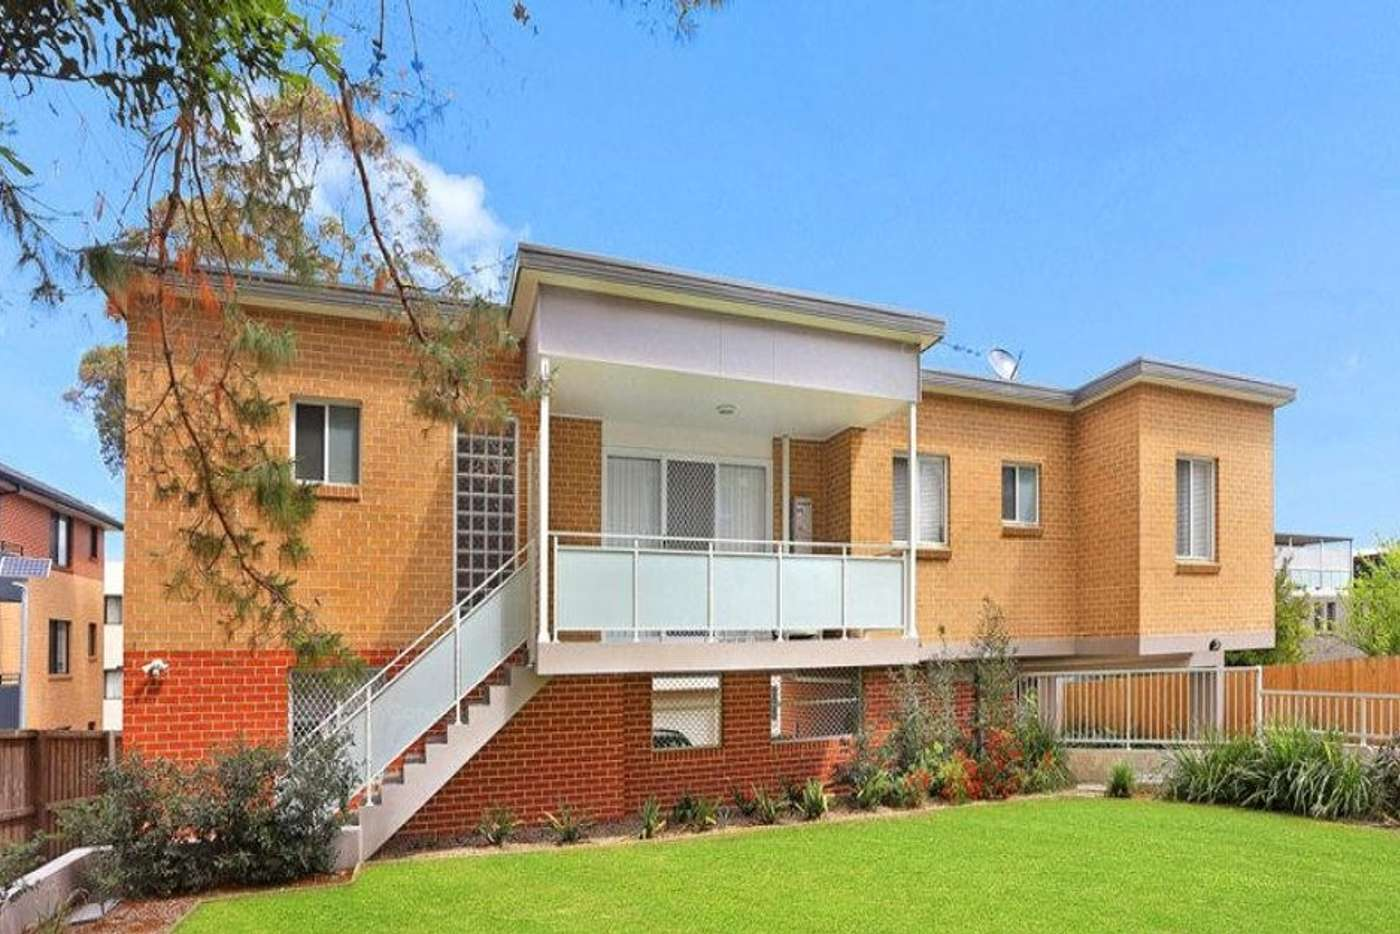 Main view of Homely house listing, 9h/11 O'REILLY STREET, Parramatta NSW 2150